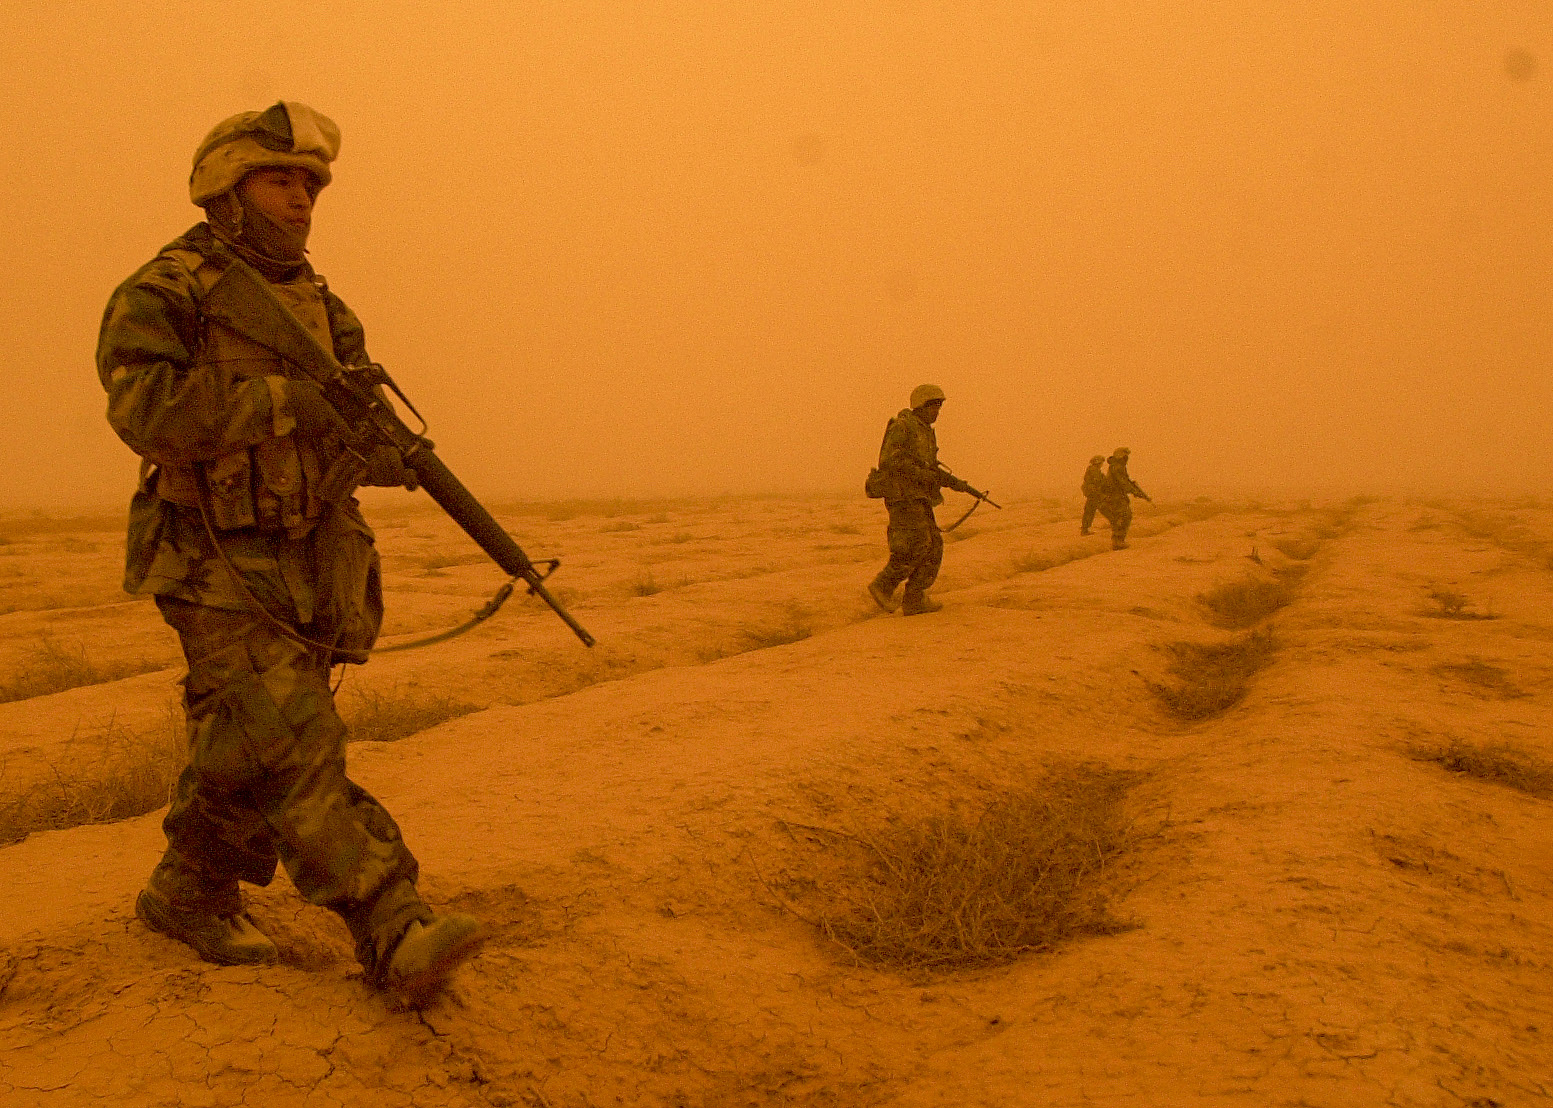 Lance Cpl. Alfredo Martinez, 21, from Lindsay, CA with battery M, 3rd Battalion, 11th Marine Regiment with fellow Marines patrol outside the artillery position in central Iraq to make sure it is safe for the artillery convey to head to another area on March 26, 2003. (Jud McCrehin/Marine Corps Times)